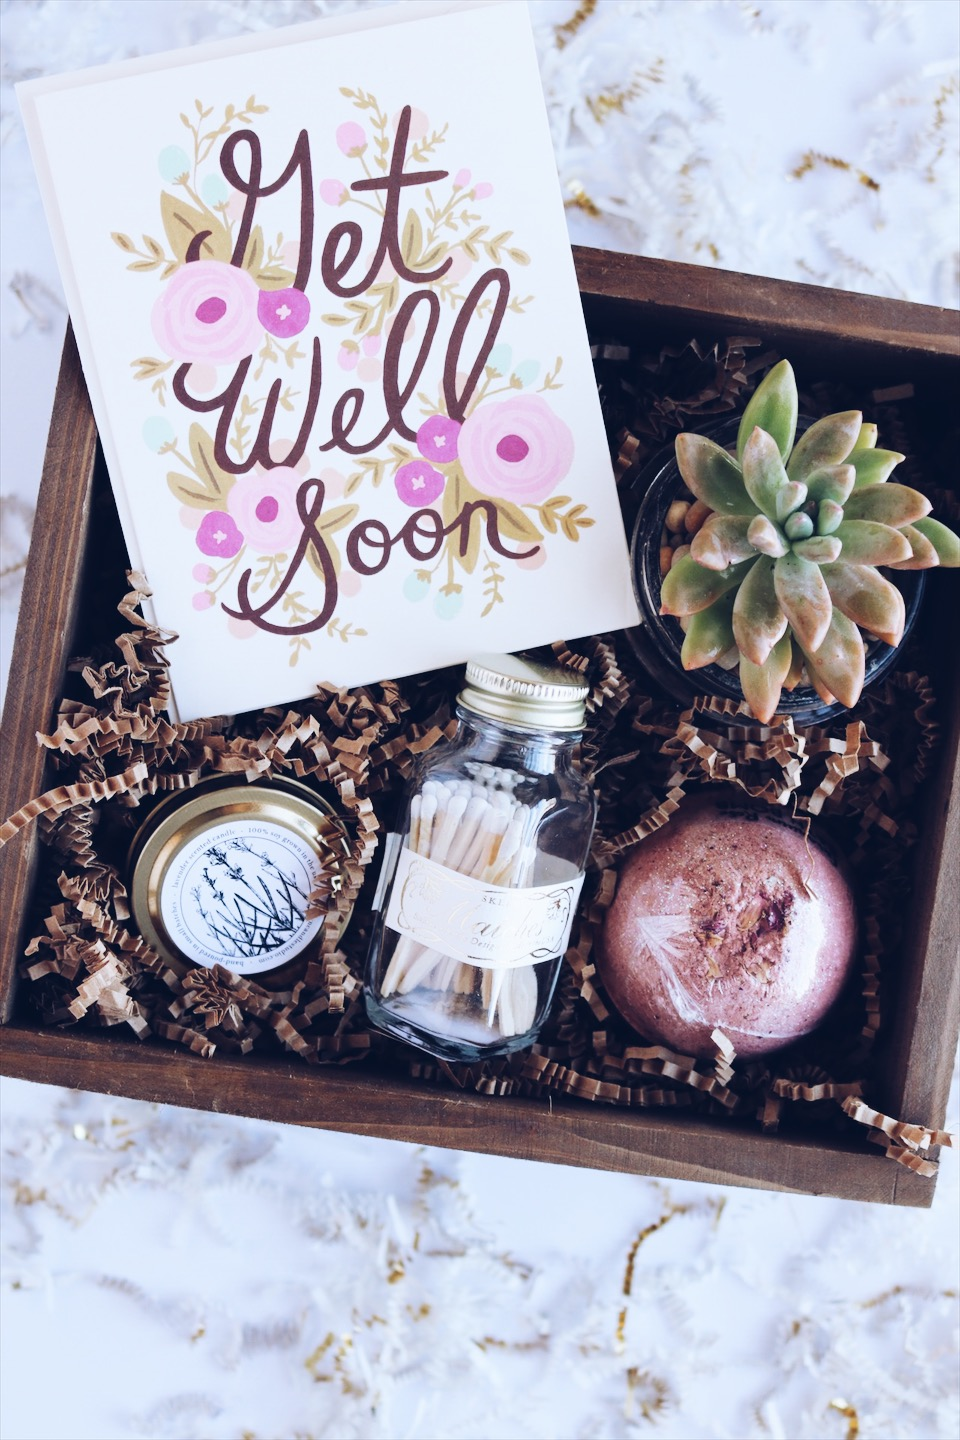 Get well soon custom gift box